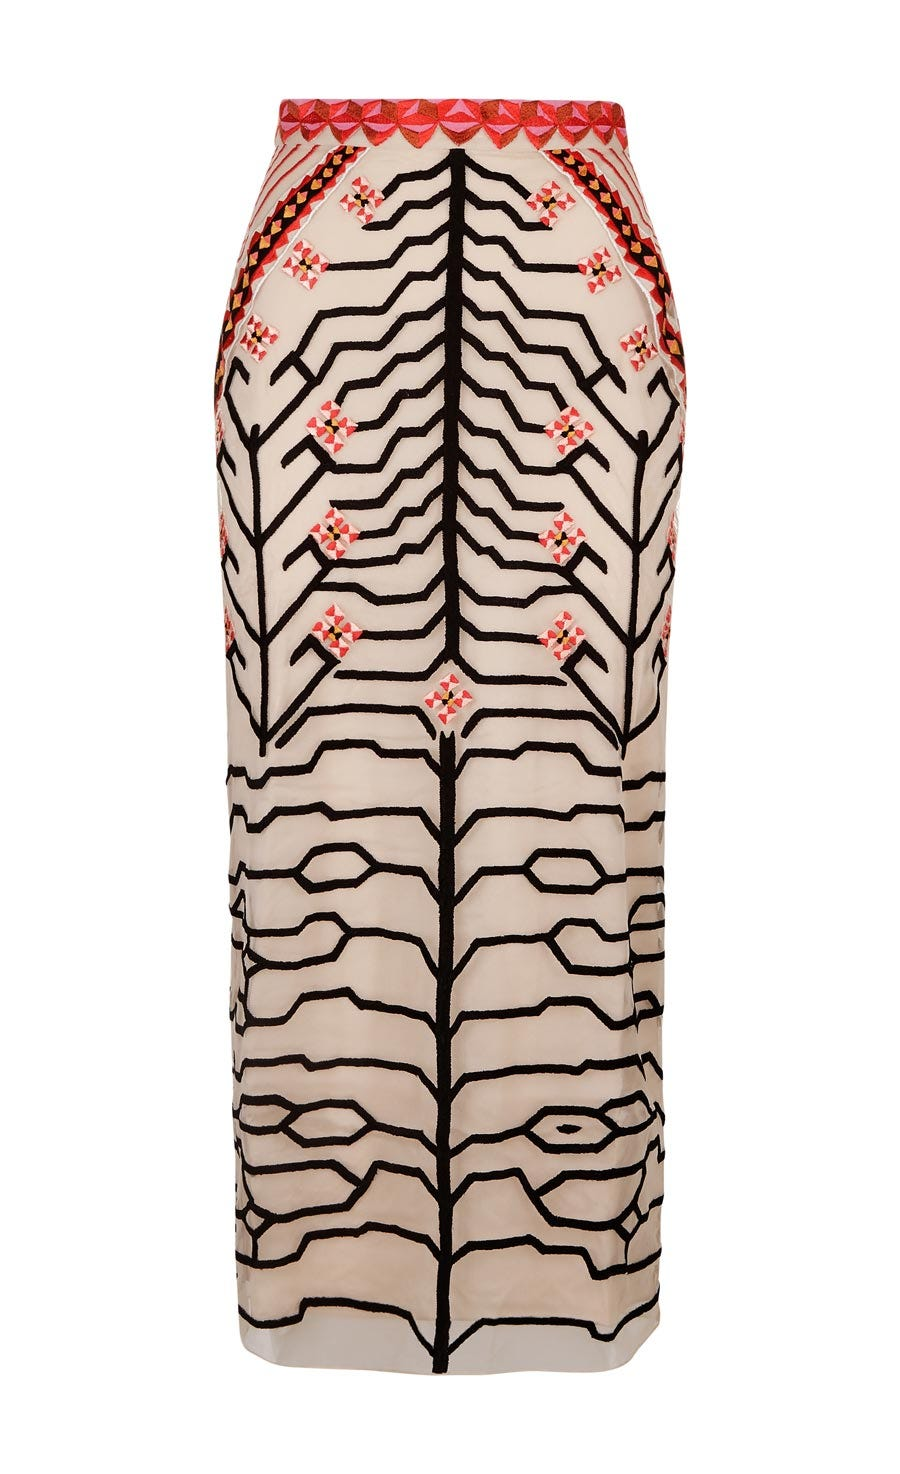 Canopy Pencil Skirt